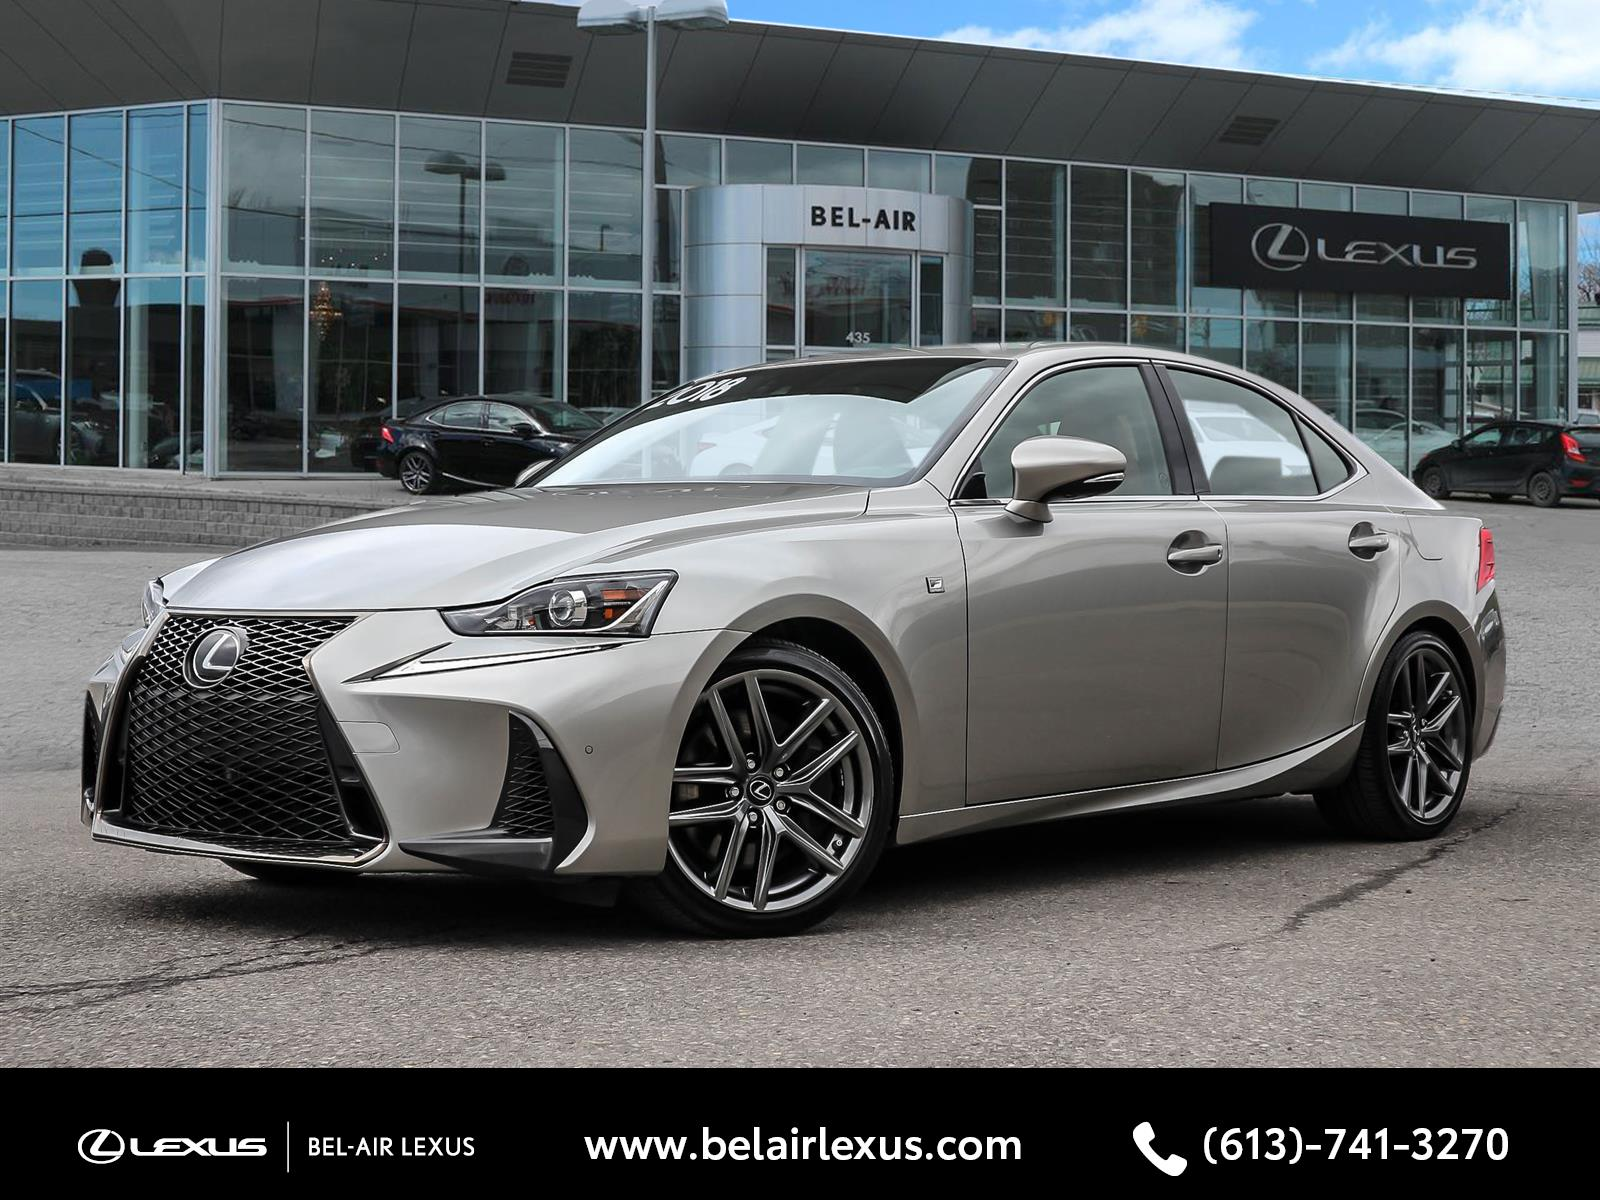 2018 Lexus IS 350 at Bel-Air Lexus